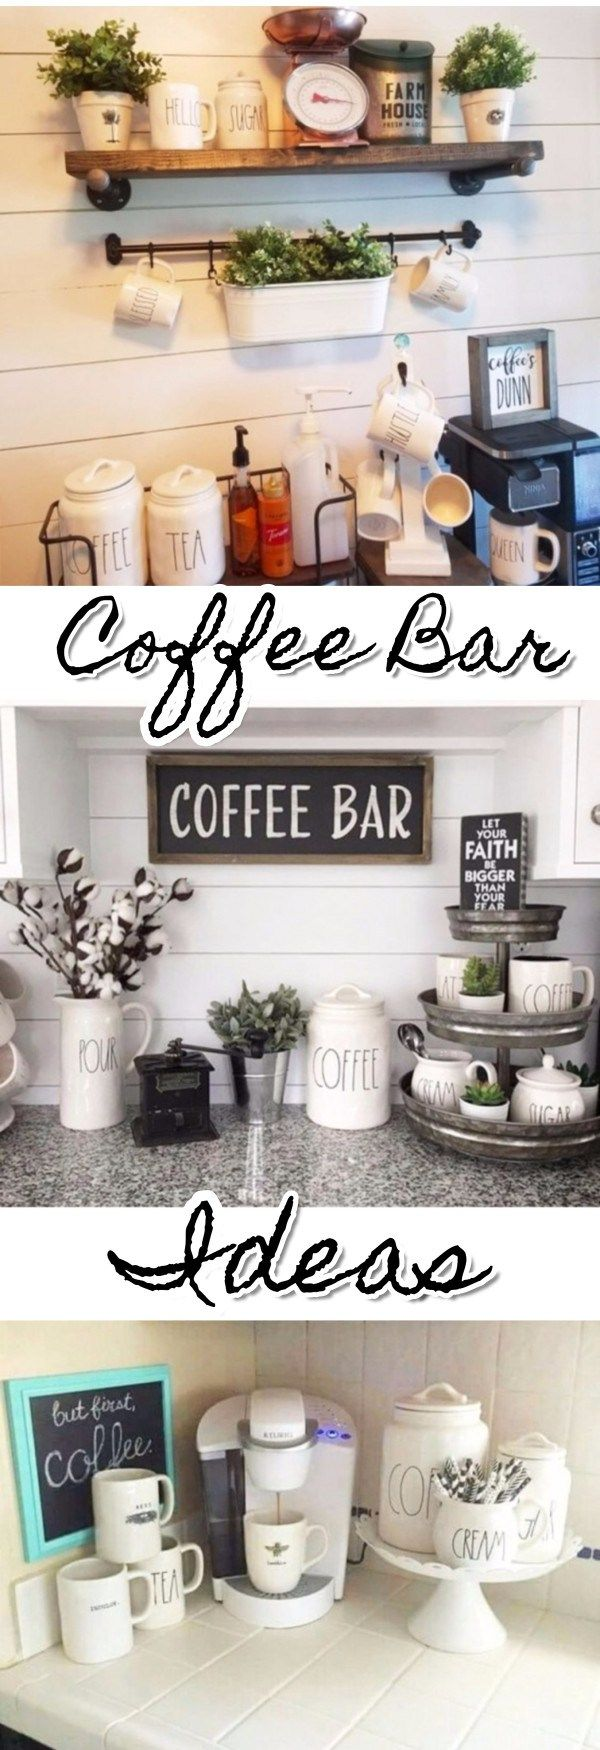 best 25 home coffee bars ideas on pinterest home coffee stations coffee bar ideas and coffee. Black Bedroom Furniture Sets. Home Design Ideas